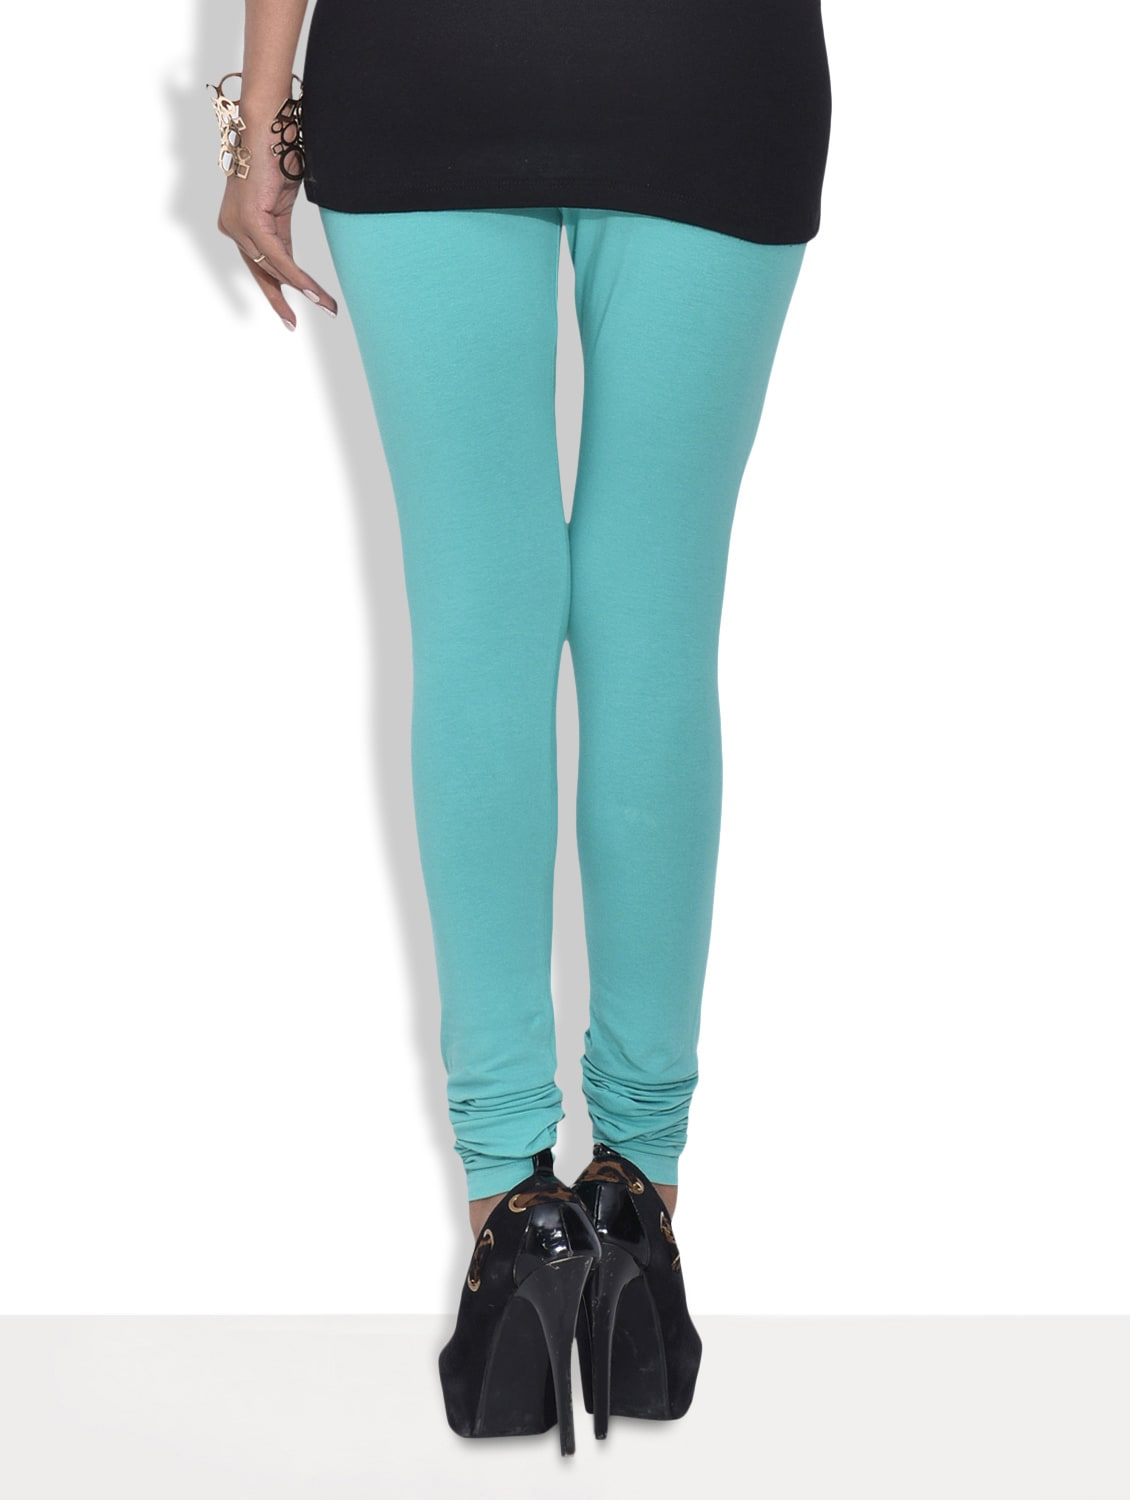 c489d7d52fe417 Buy Blue Cotton And Spandex Churidar Leggings by Frenchtrendz - Online  shopping for Leggings in India | 9592284